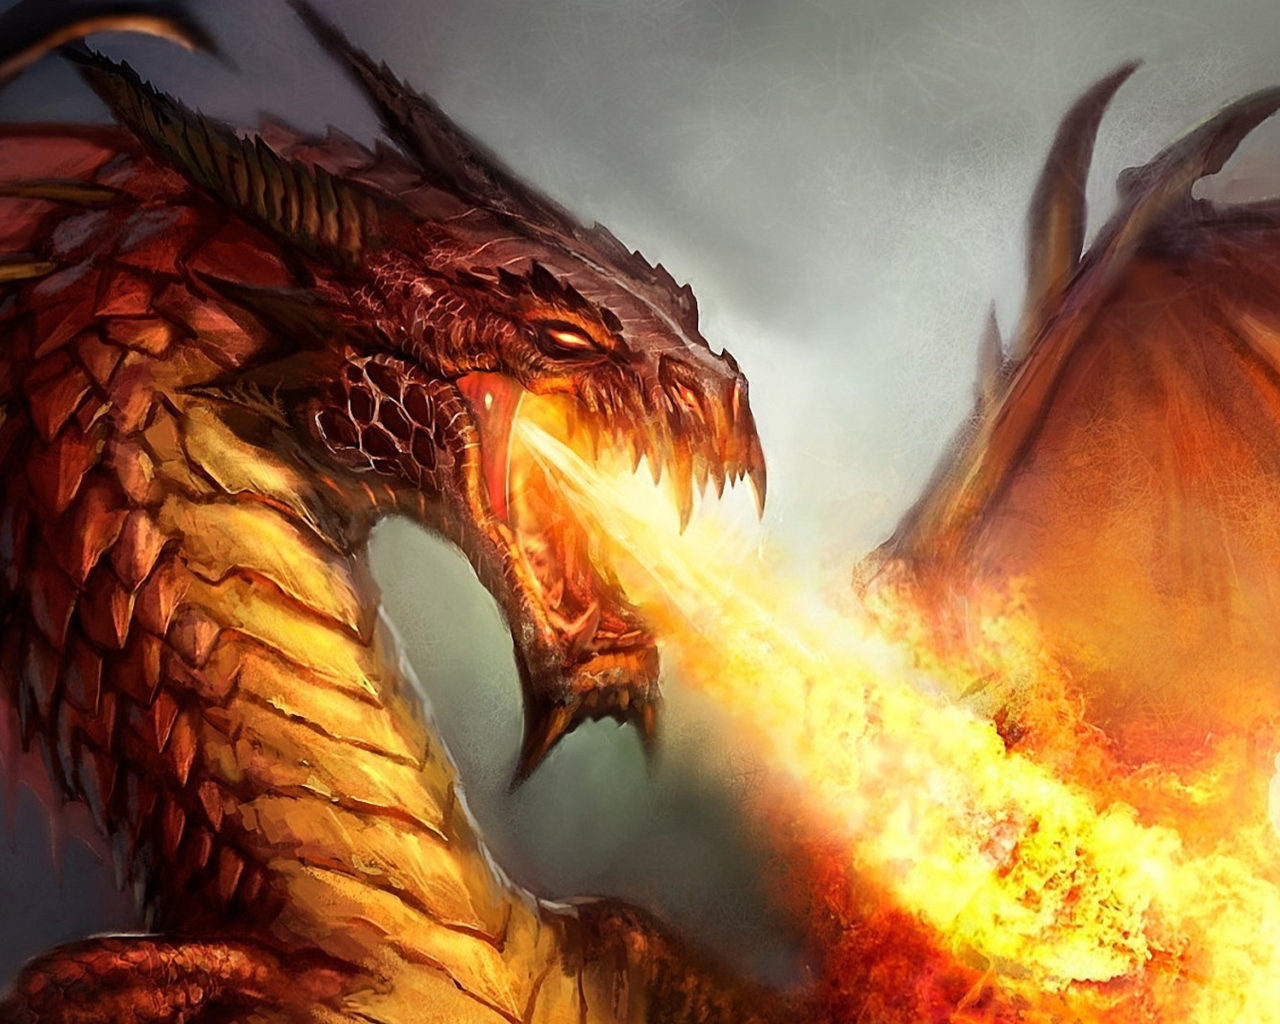 Pretty Girl Wallpapers Hd Fire Spitting Dragon 1920x1080 Wallpapers13 Com